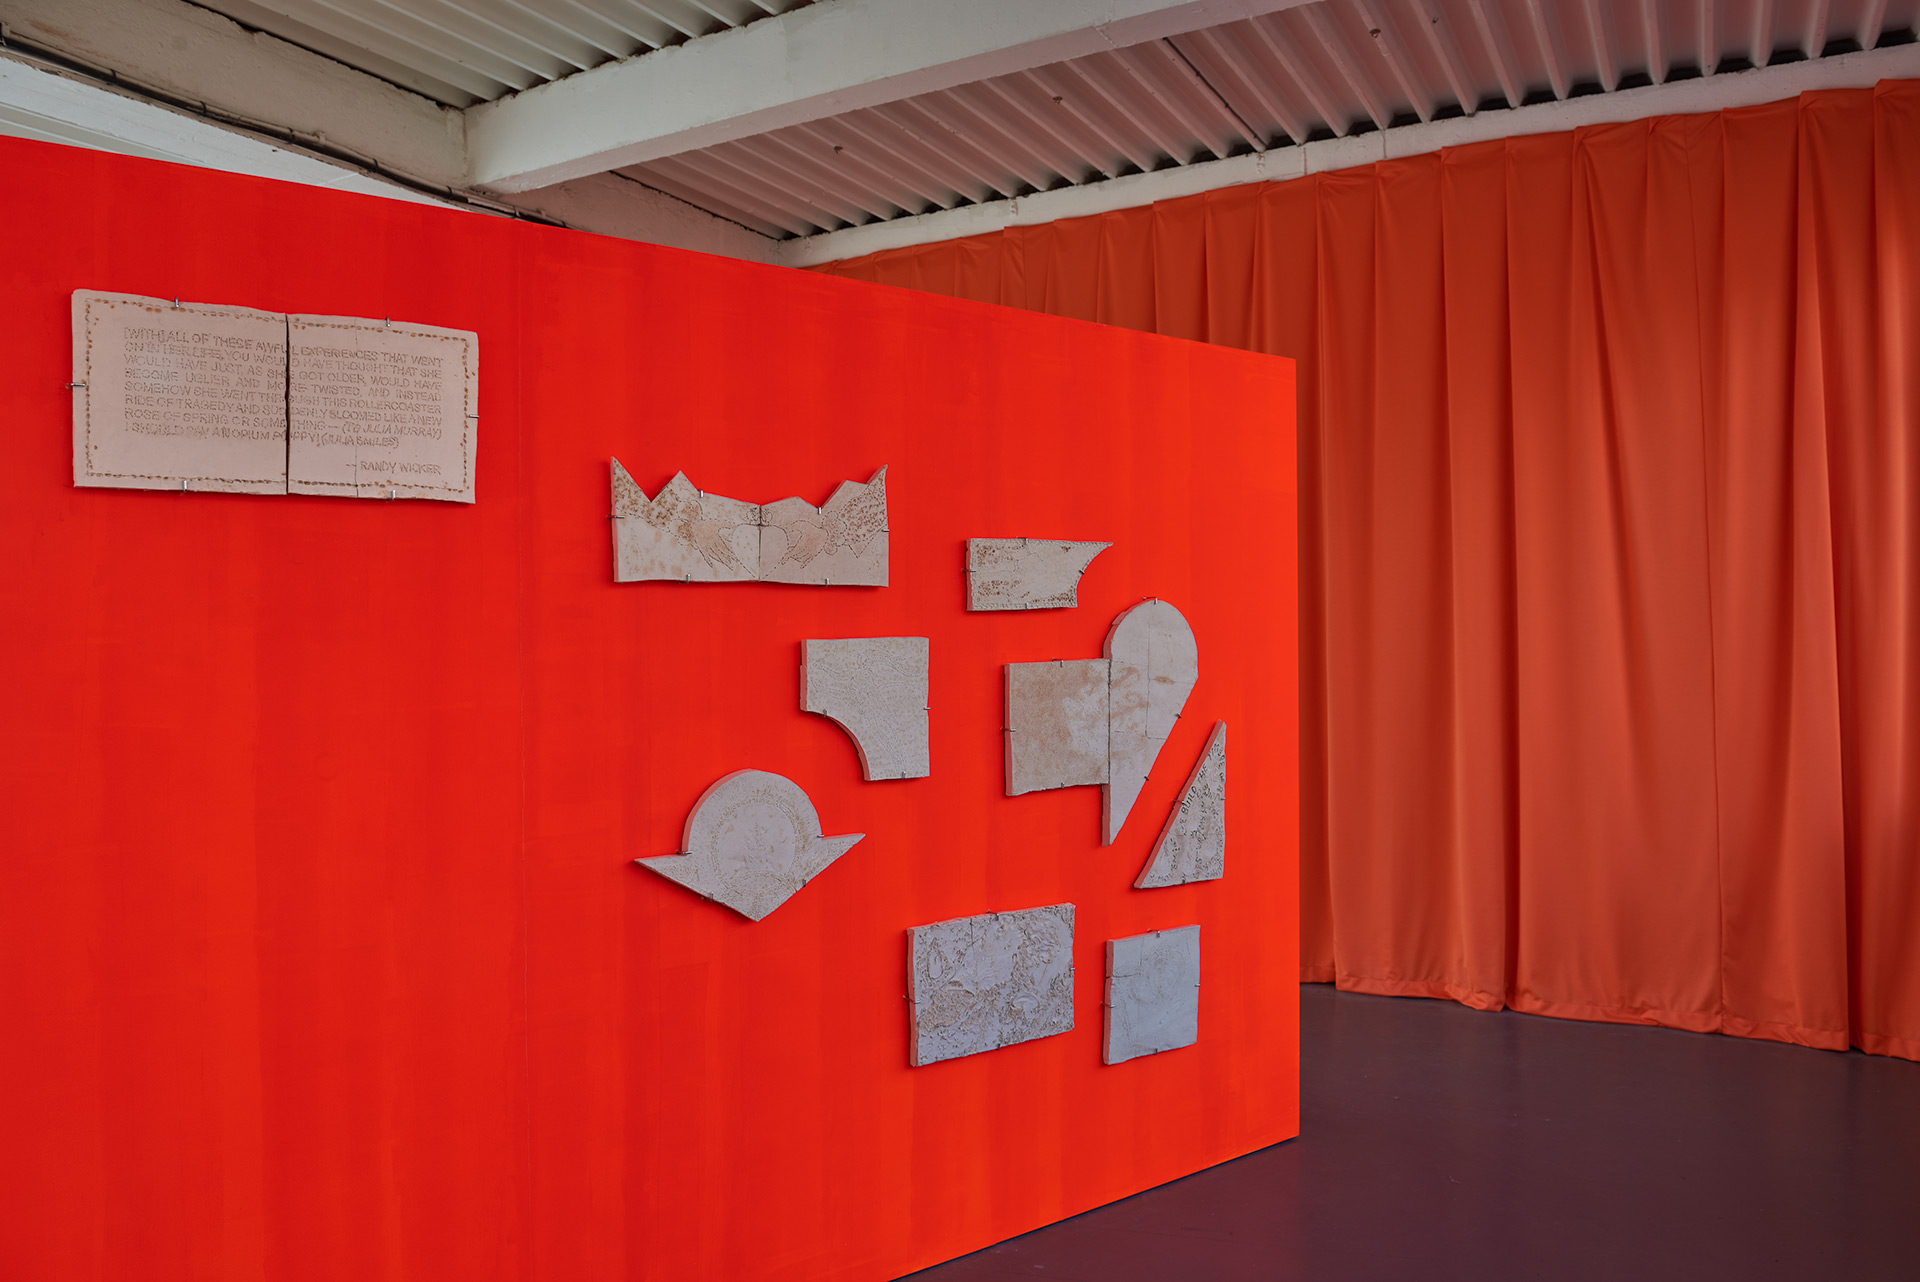 A series of fired ceramic slabs hung on a bright orange wall with a heavy orange curtain in the background.